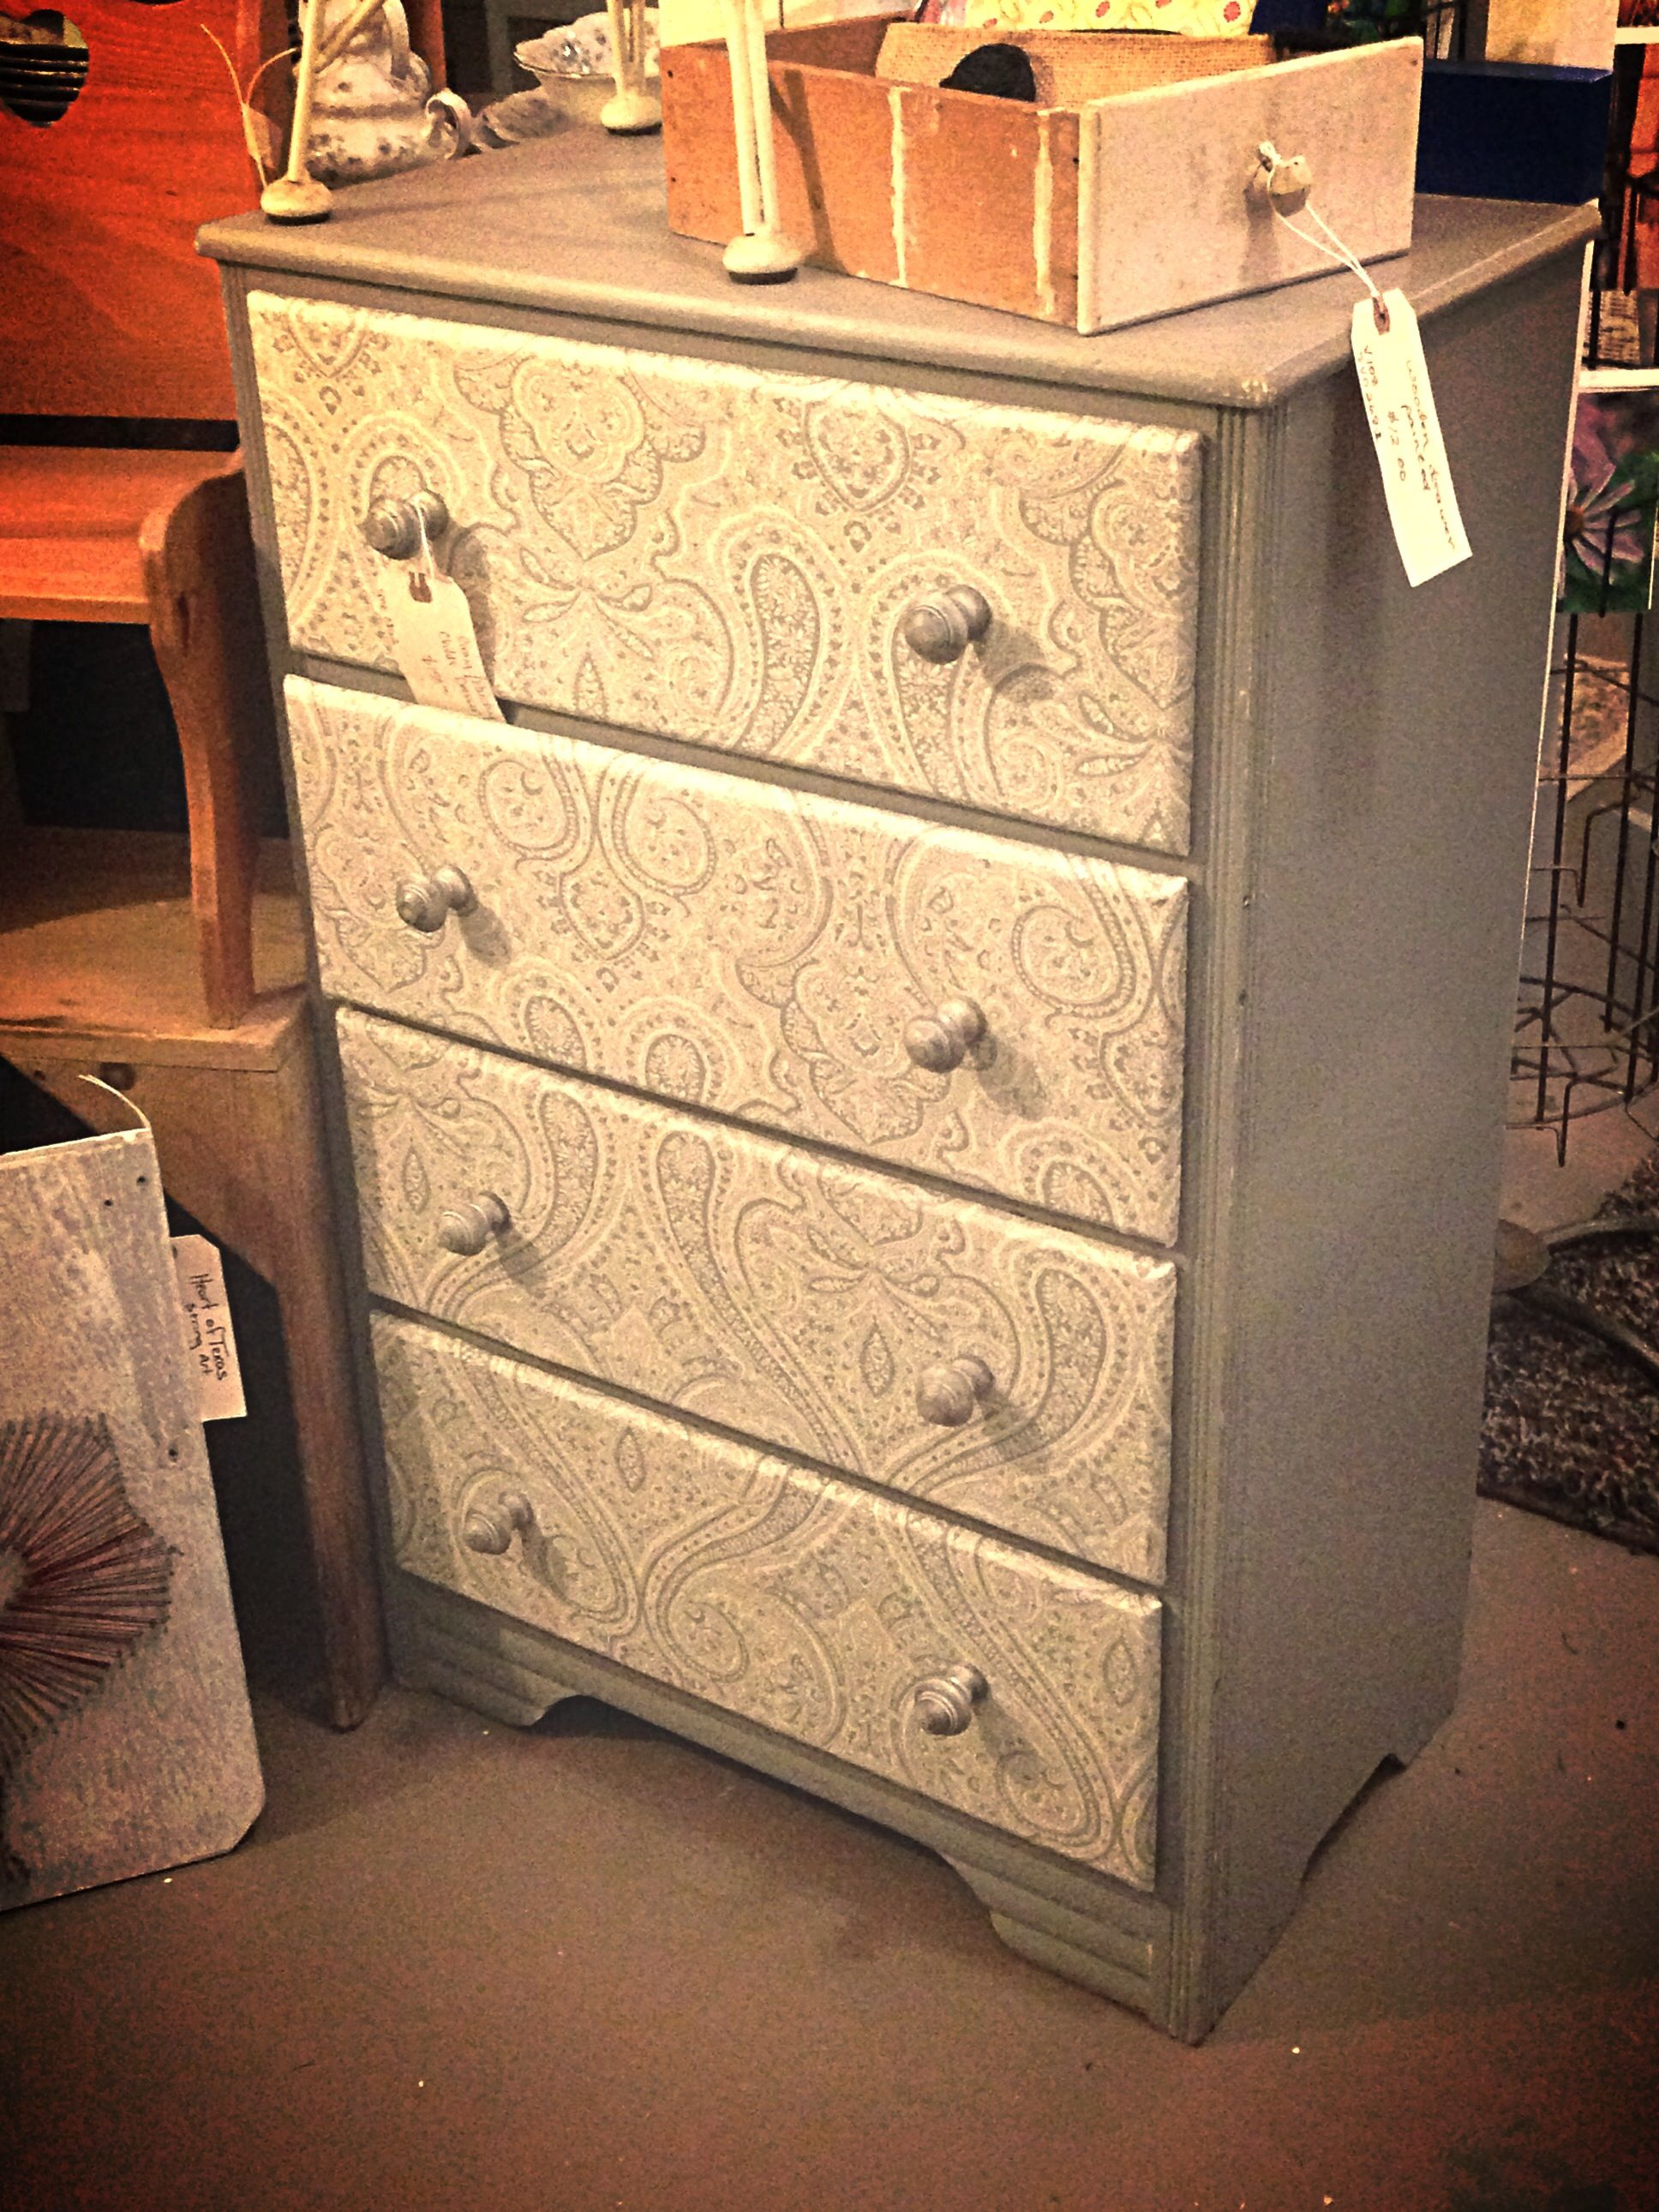 Love This Childu0027s Dresser!!!! Fabric Covered Drawer Fronts! Cute!!!